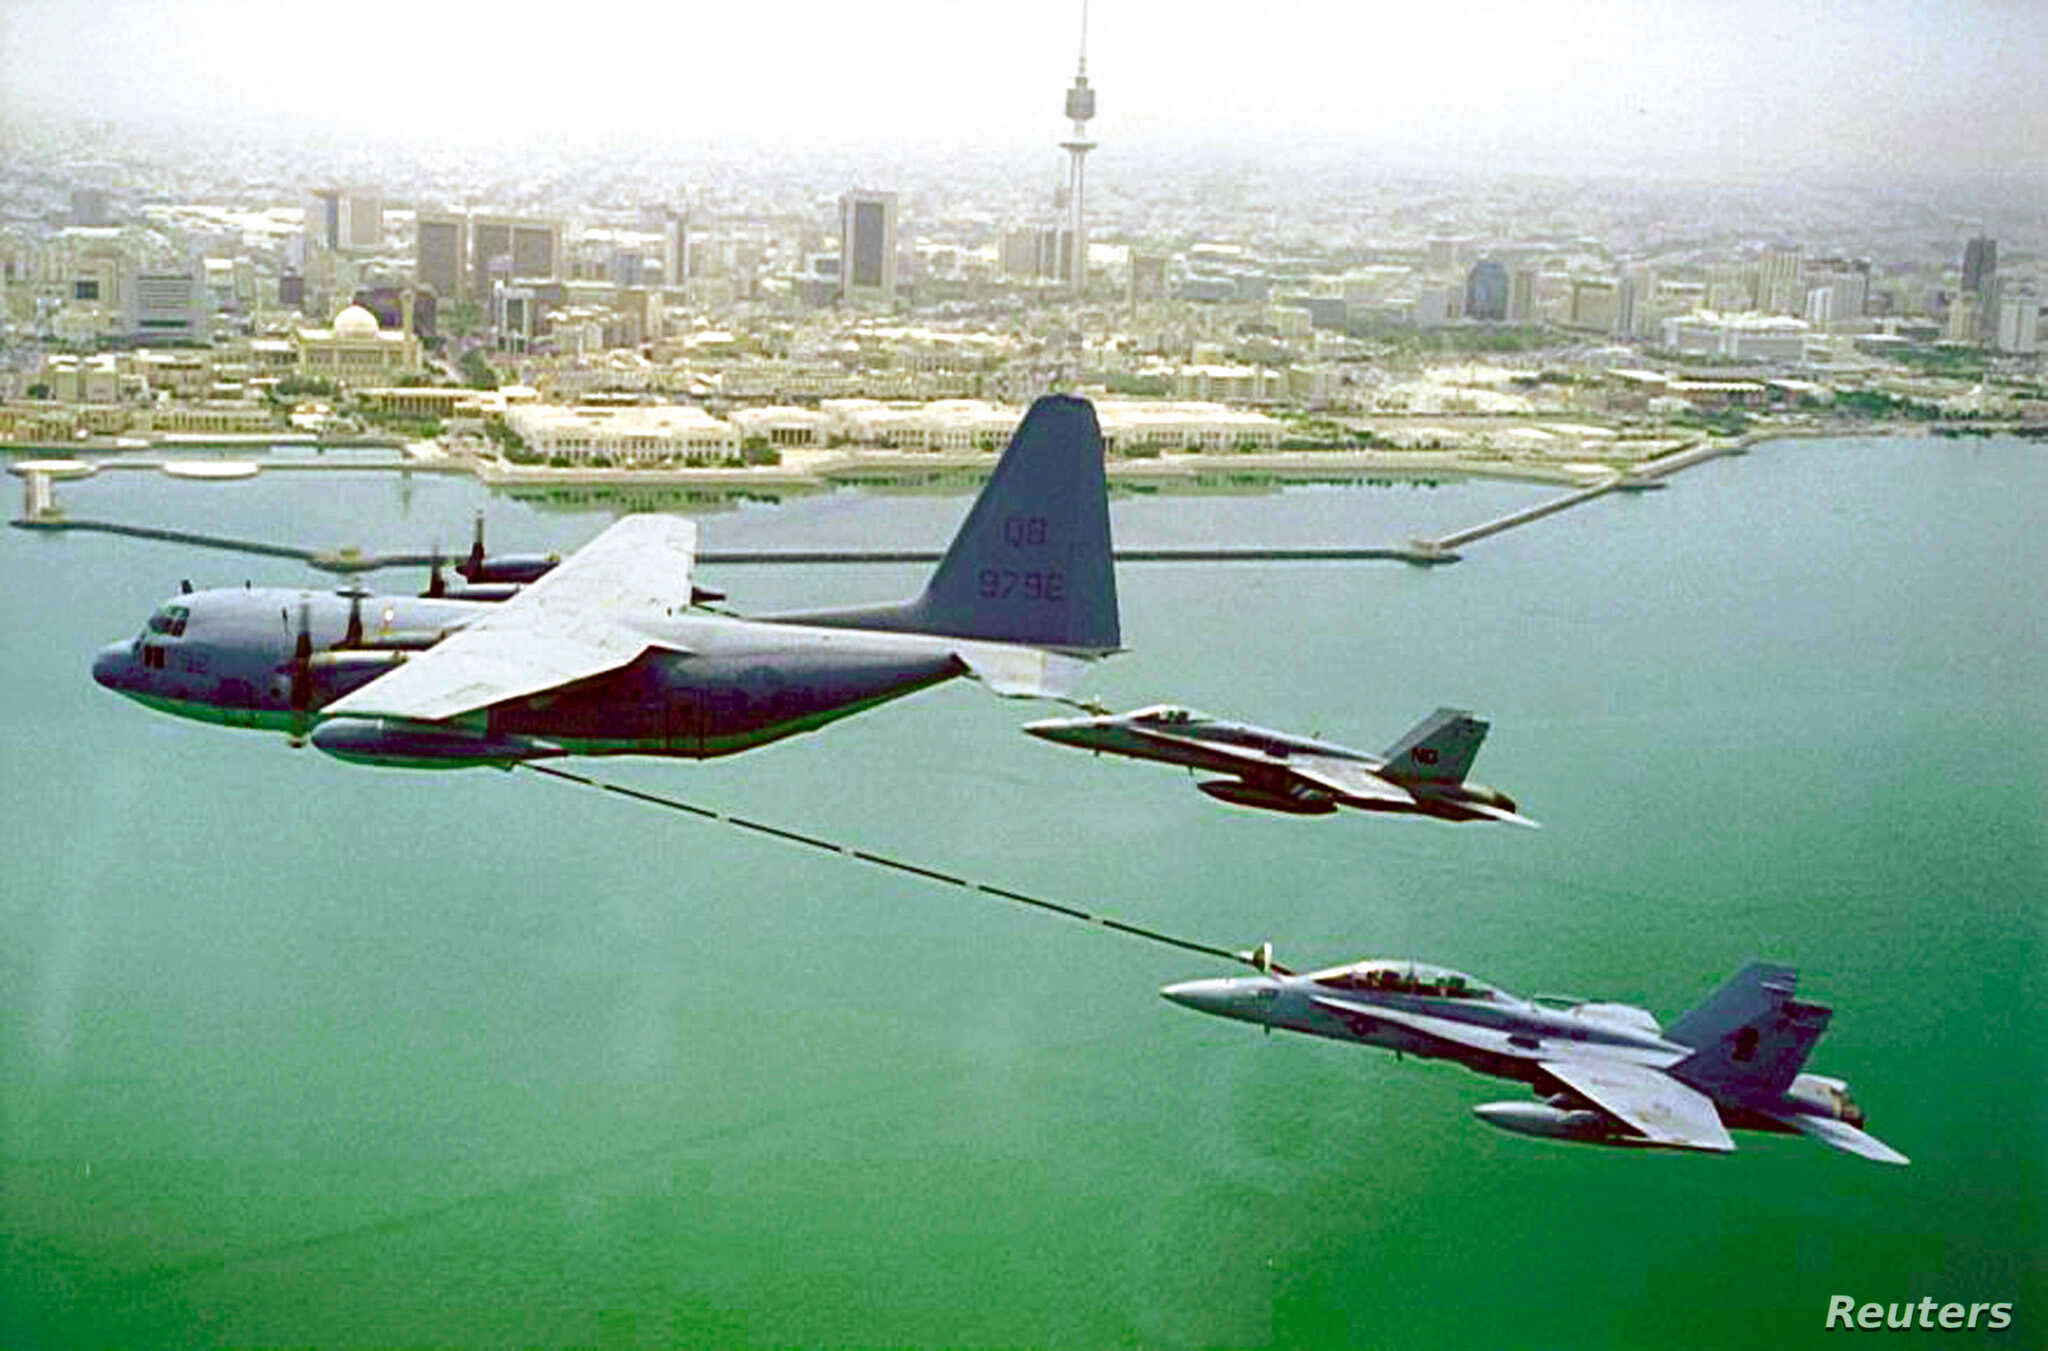 FILE - A U.S. Marine Corps KC-130 refuels two F/A-18 fighter planes as they soar high above Kuwait, Dec. 22, 2000. The KC-130 is a Marine Corps aircraft. It is a refueling version of the C-130 military cargo plane and can also be used to carry passen...